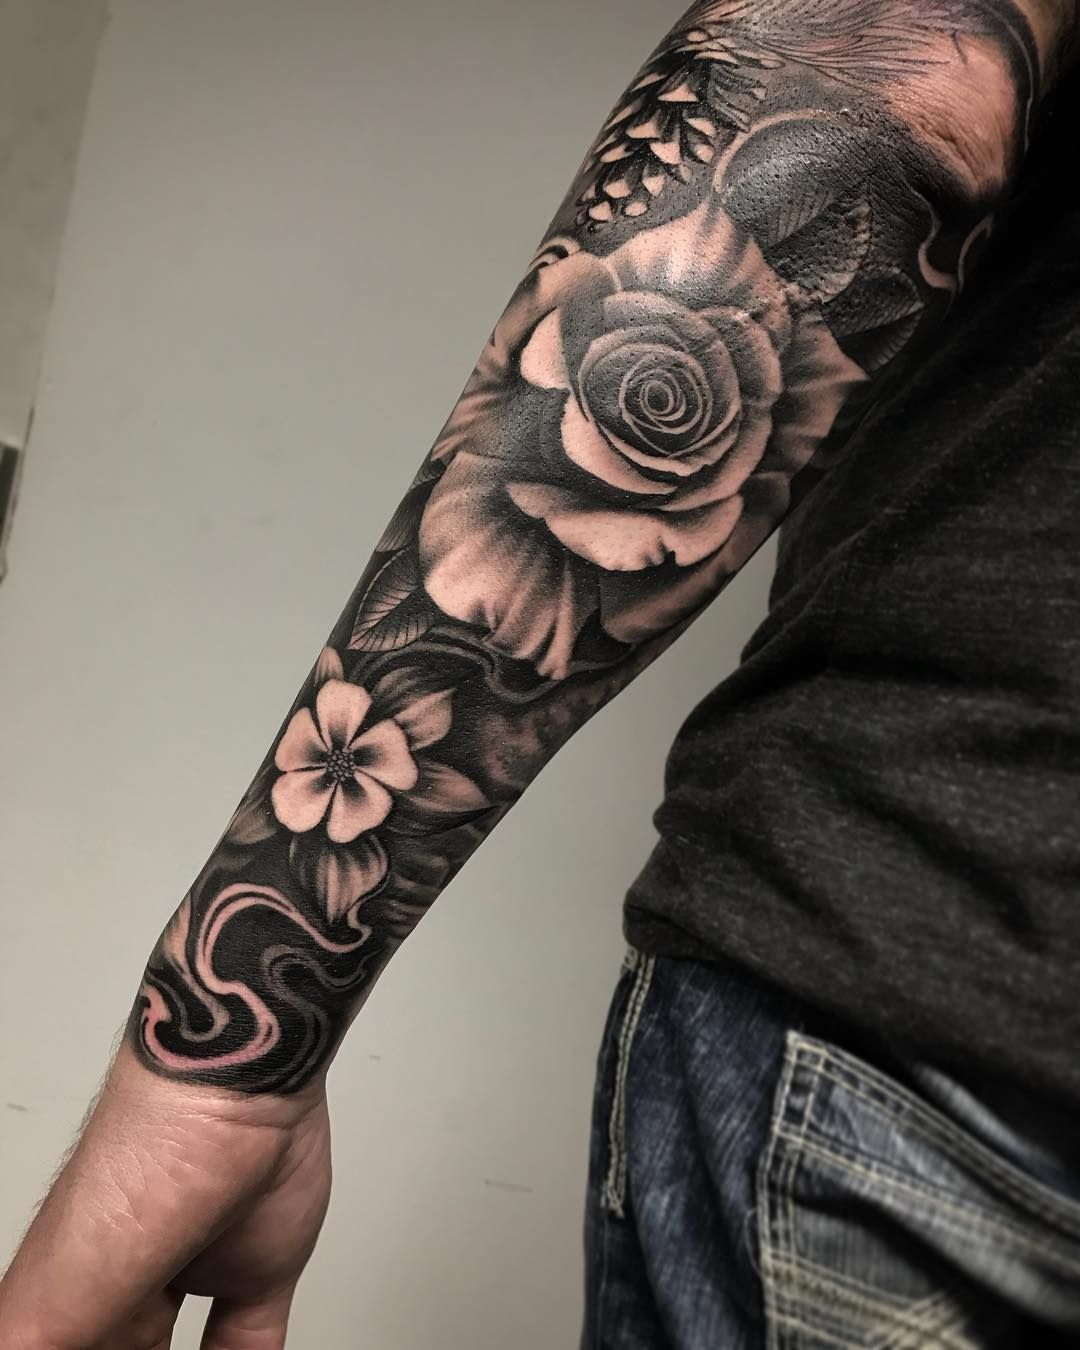 Floral tattoos can also be masculine fellas don't think